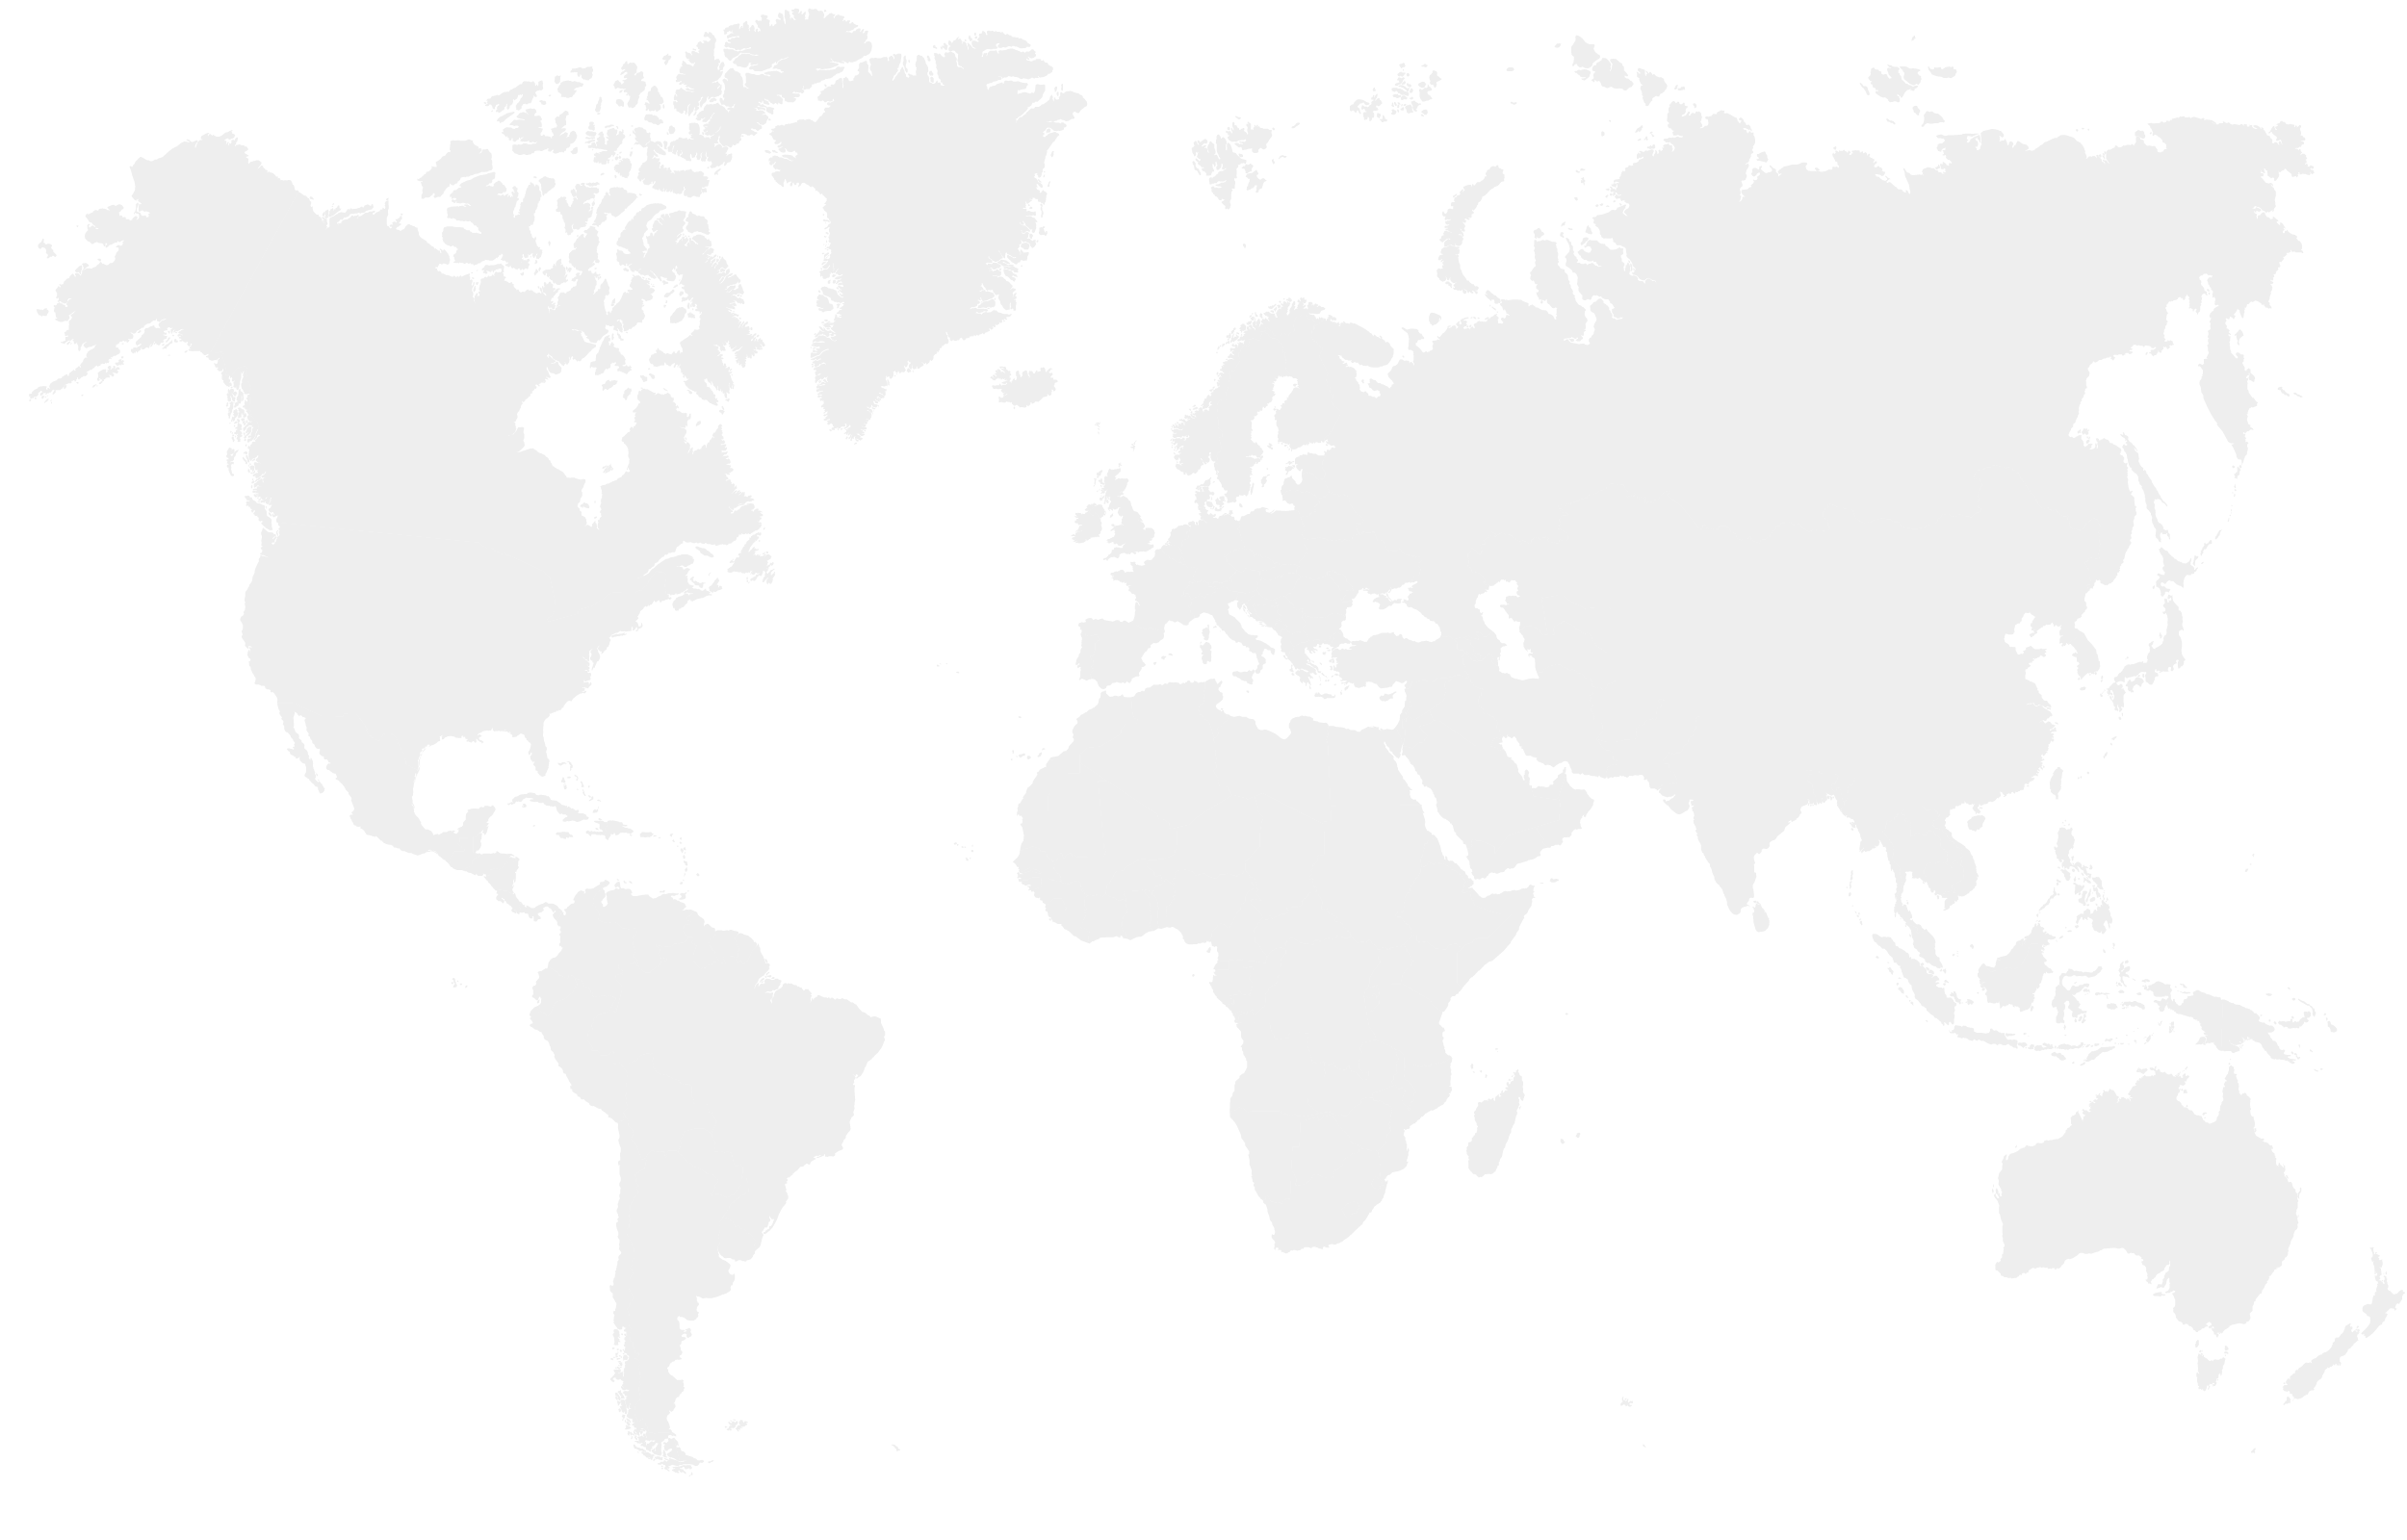 Amazon RDS Regions Map